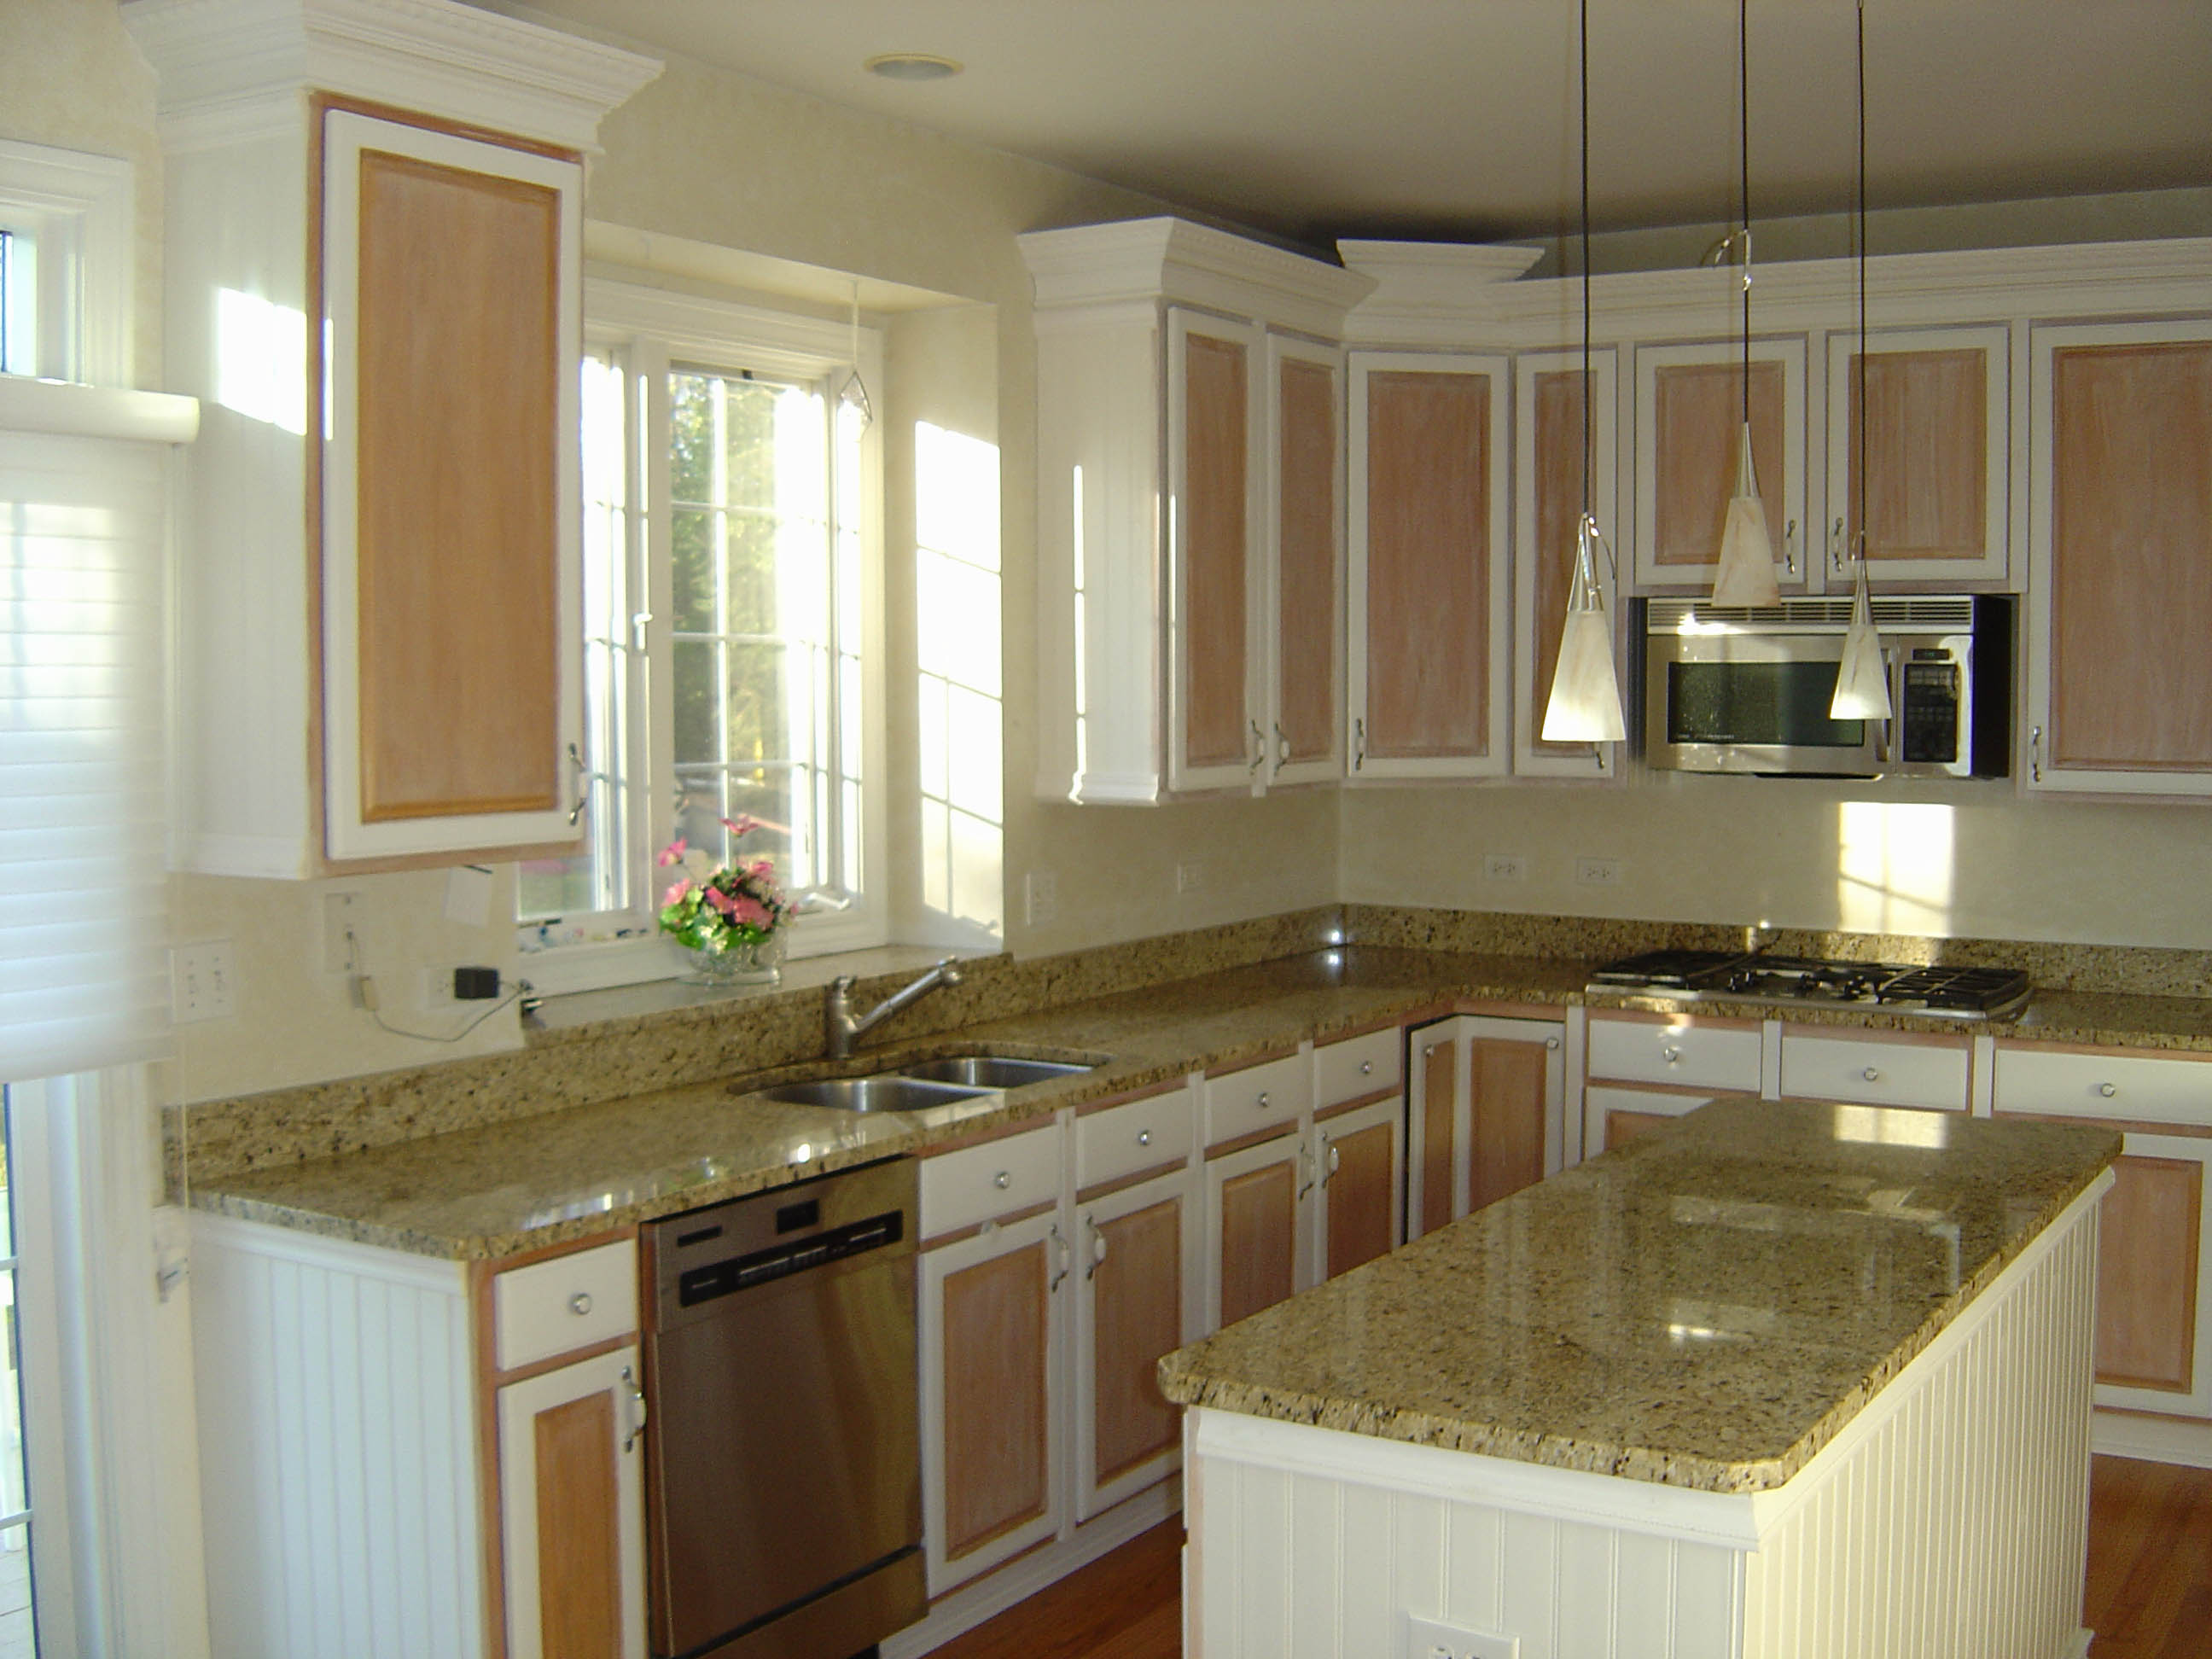 How Much Does Cabinet Refacing Cost Affordable Cabinet Refacing - How much are new kitchen cabinets